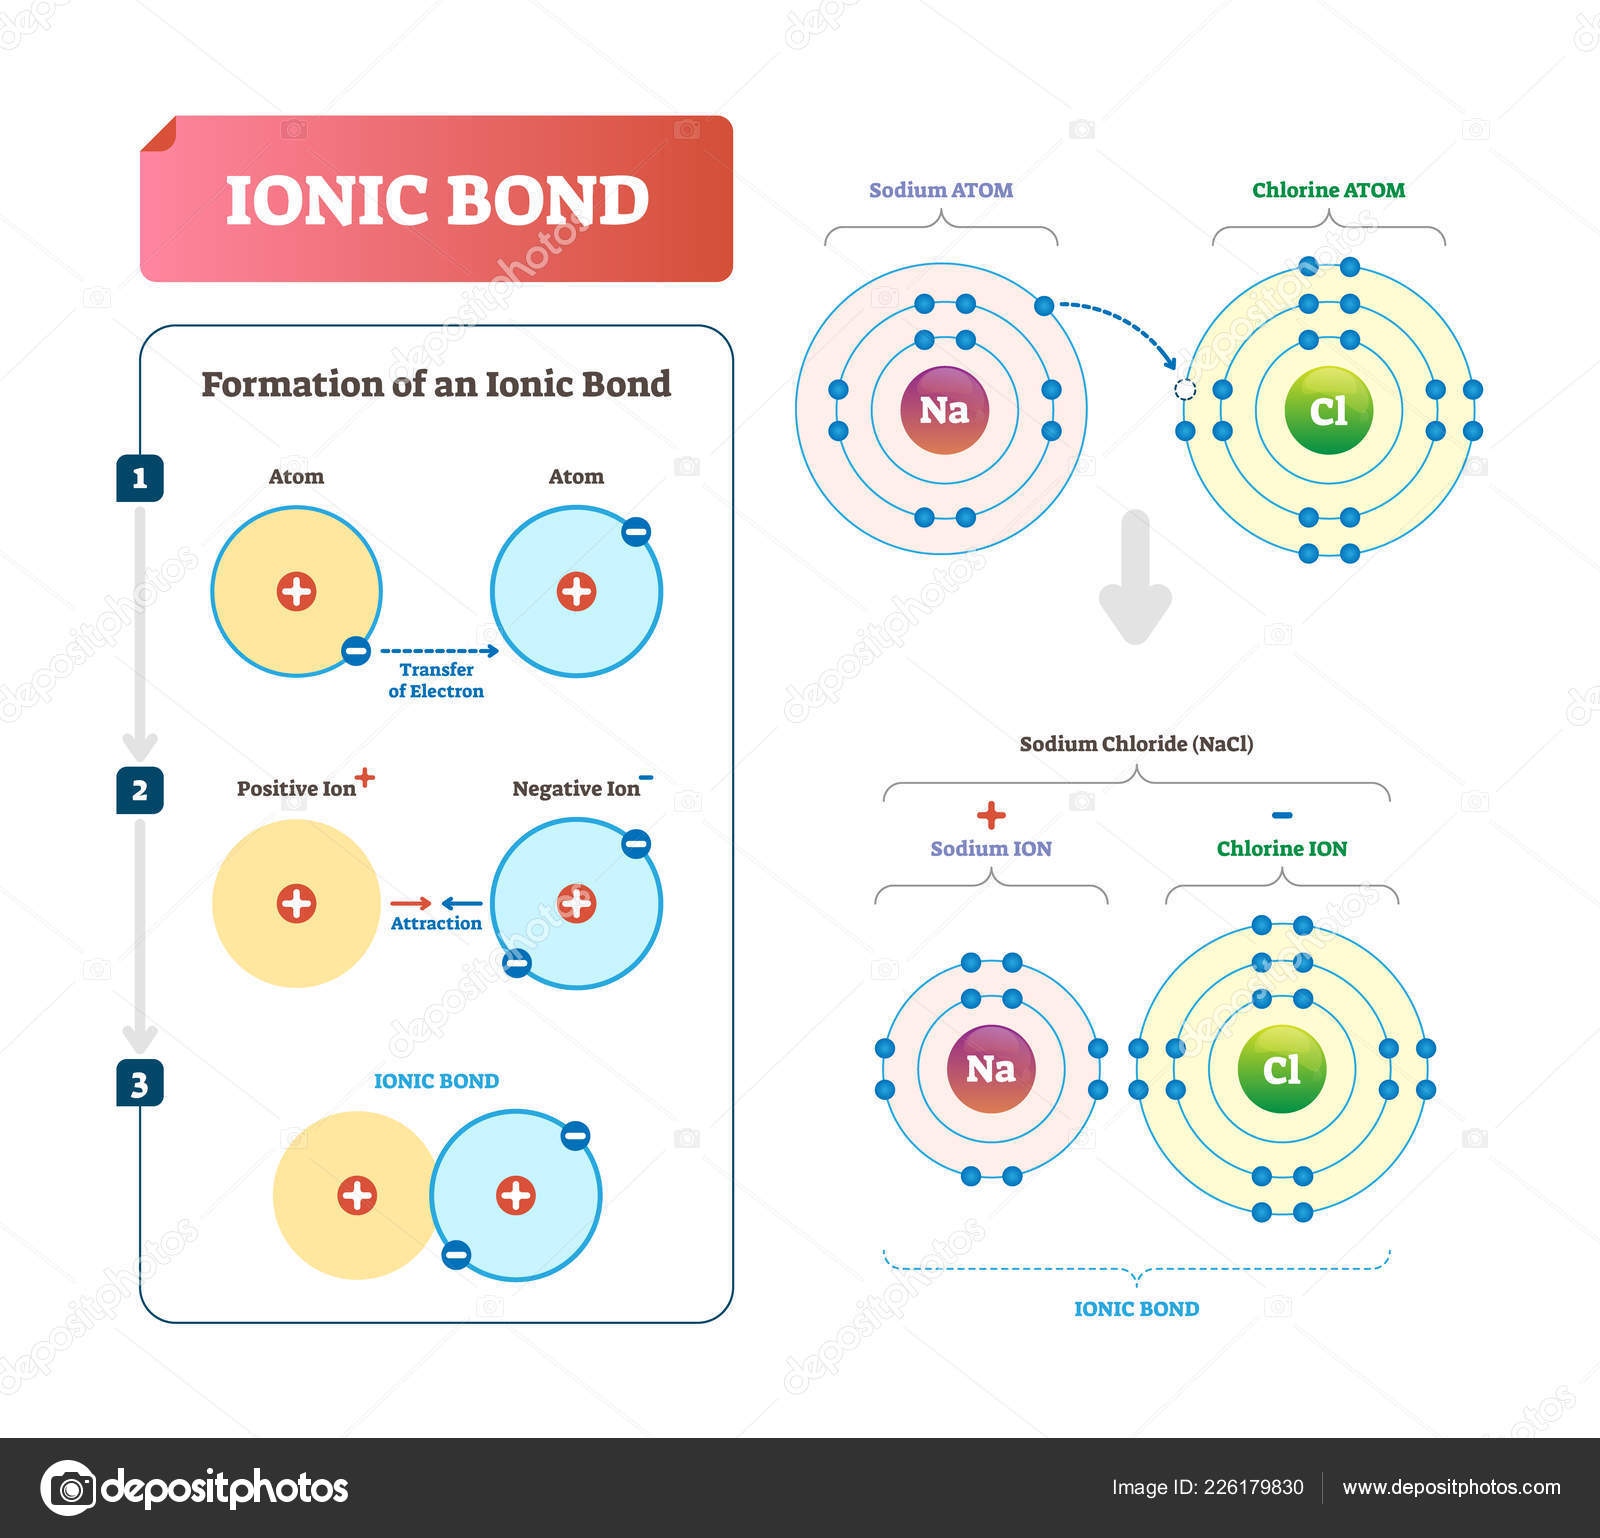 ionic bond vector illustration labeled diagram with formation